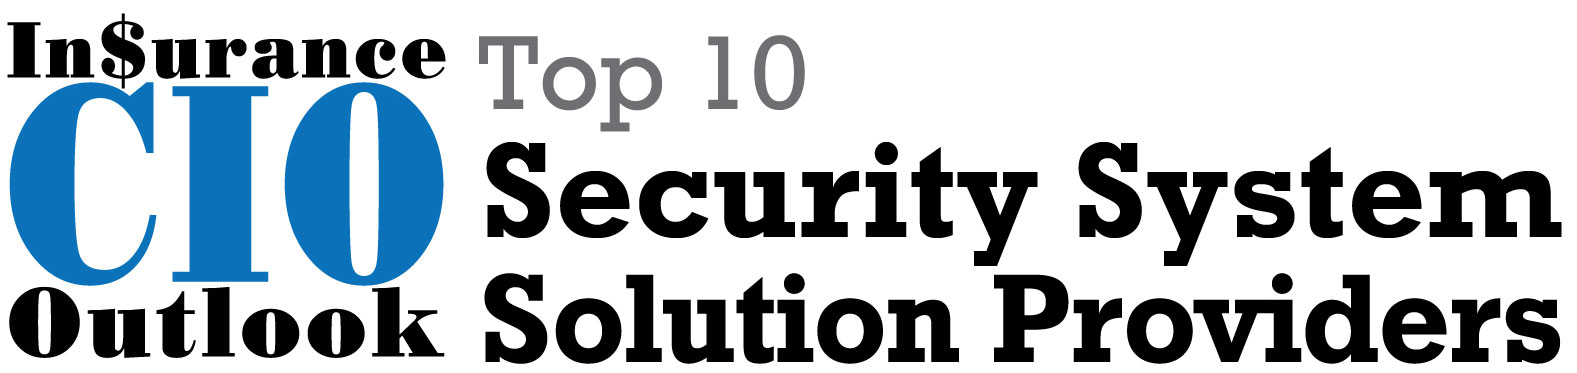 Top 10 Security Systems Tech Companies - 2017